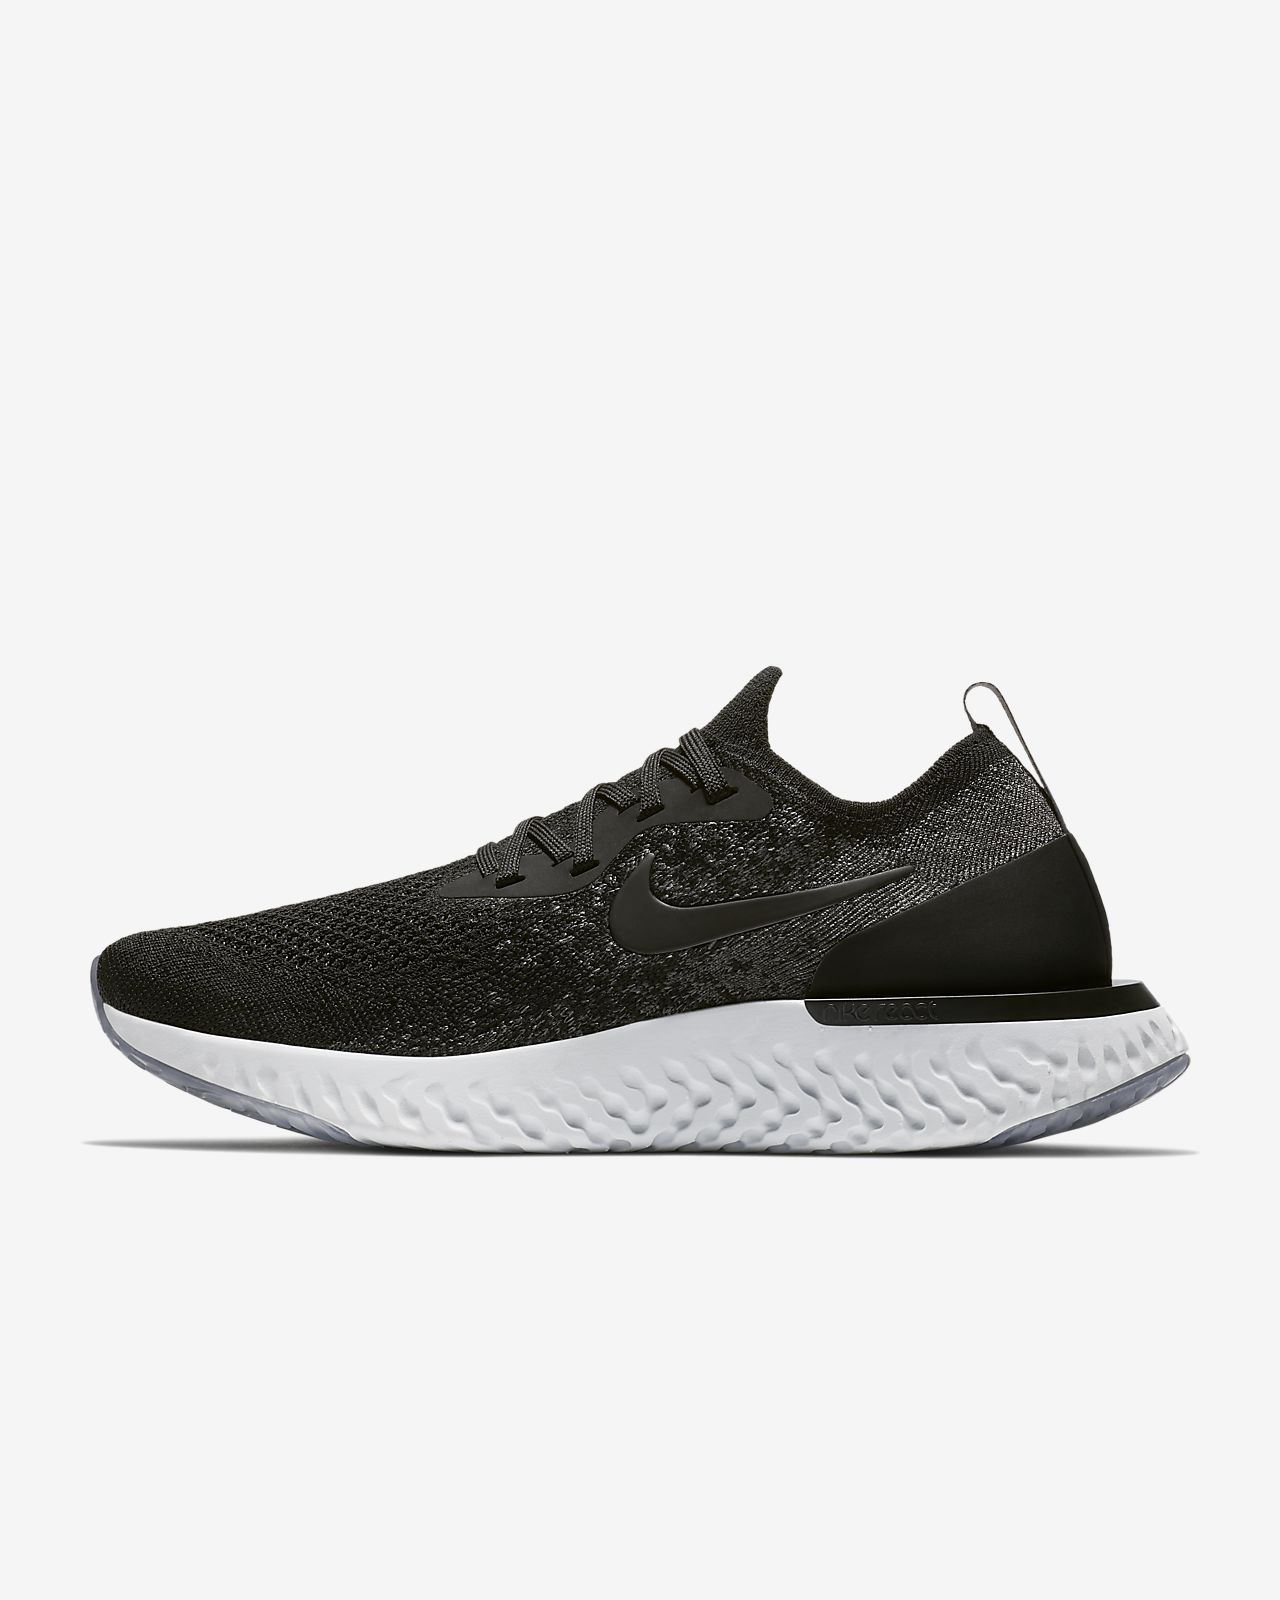 Wmns Nike Epic React Flyknit Women Running Shoes Trainers Sneakers Pick 1